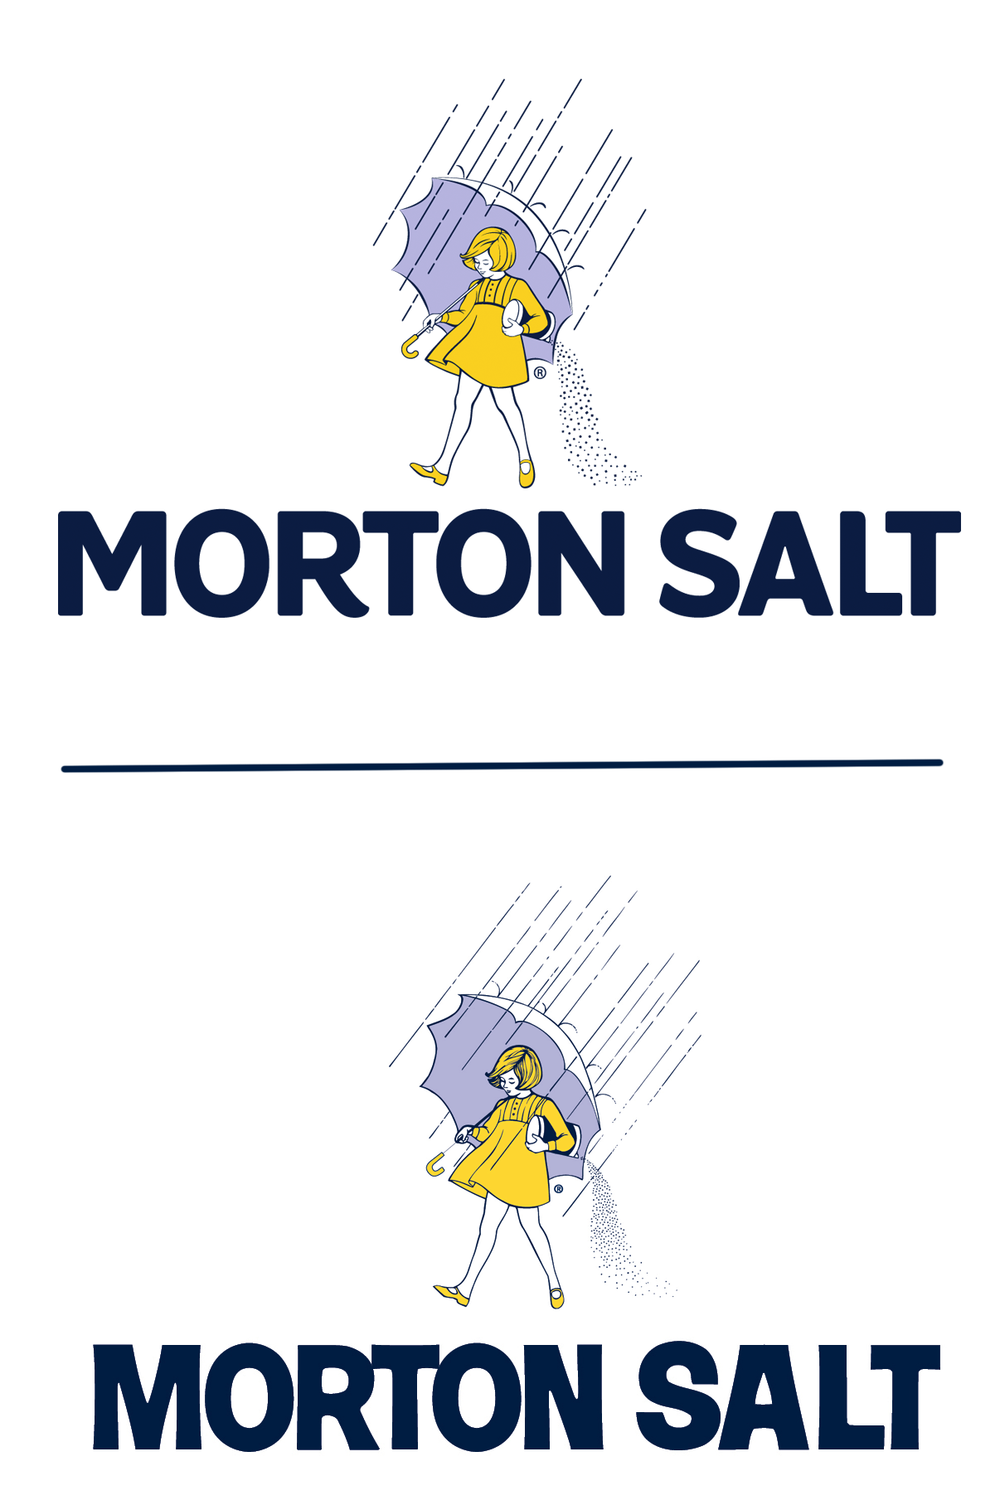 Before & After Morton Salt Branding — The Dieline. Arkansas Football Ranking Term Life Insurnace. Mortgage With Credit Card Debt. Facelift Surgery Procedure Dentist Lenexa Ks. Military Colleges In Texas Apex Alarm System. Drug Rehab Santa Barbara Keller Family Dental. How To Reduce Credit Card Interest Rate. Current Mortgage Interest Rates 15 Year Fixed. Chiropractic Schools Ny Sales Funnel Software